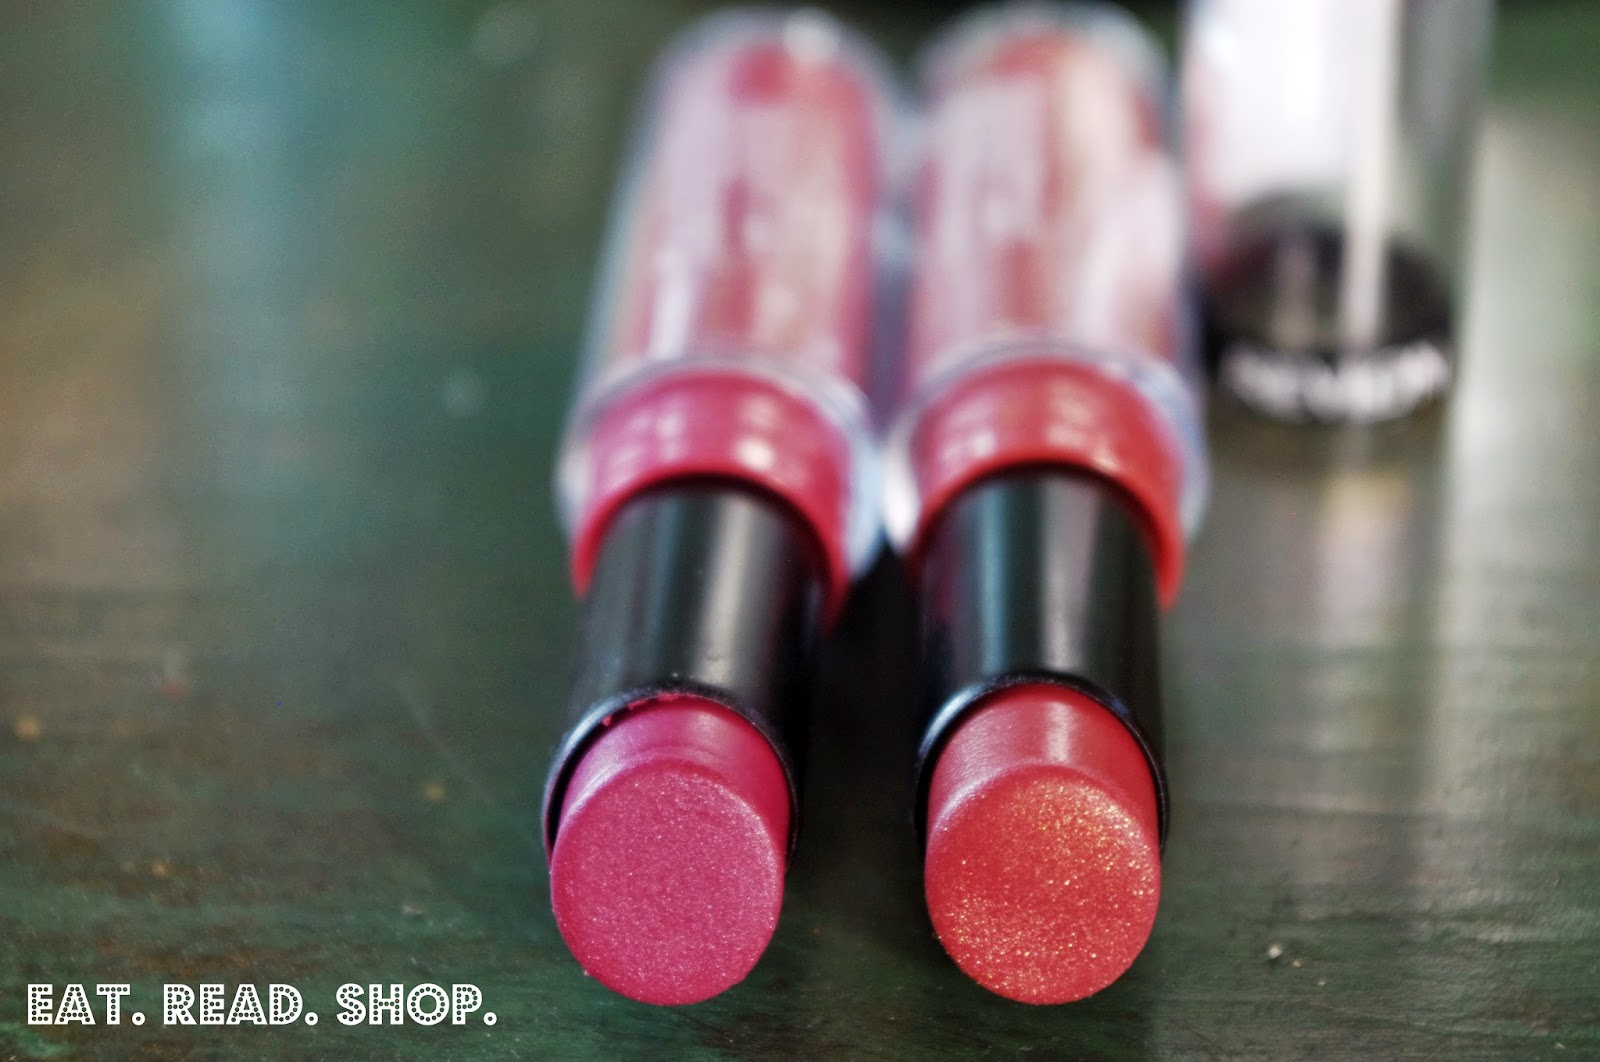 how to make lipstick stay on when drinking